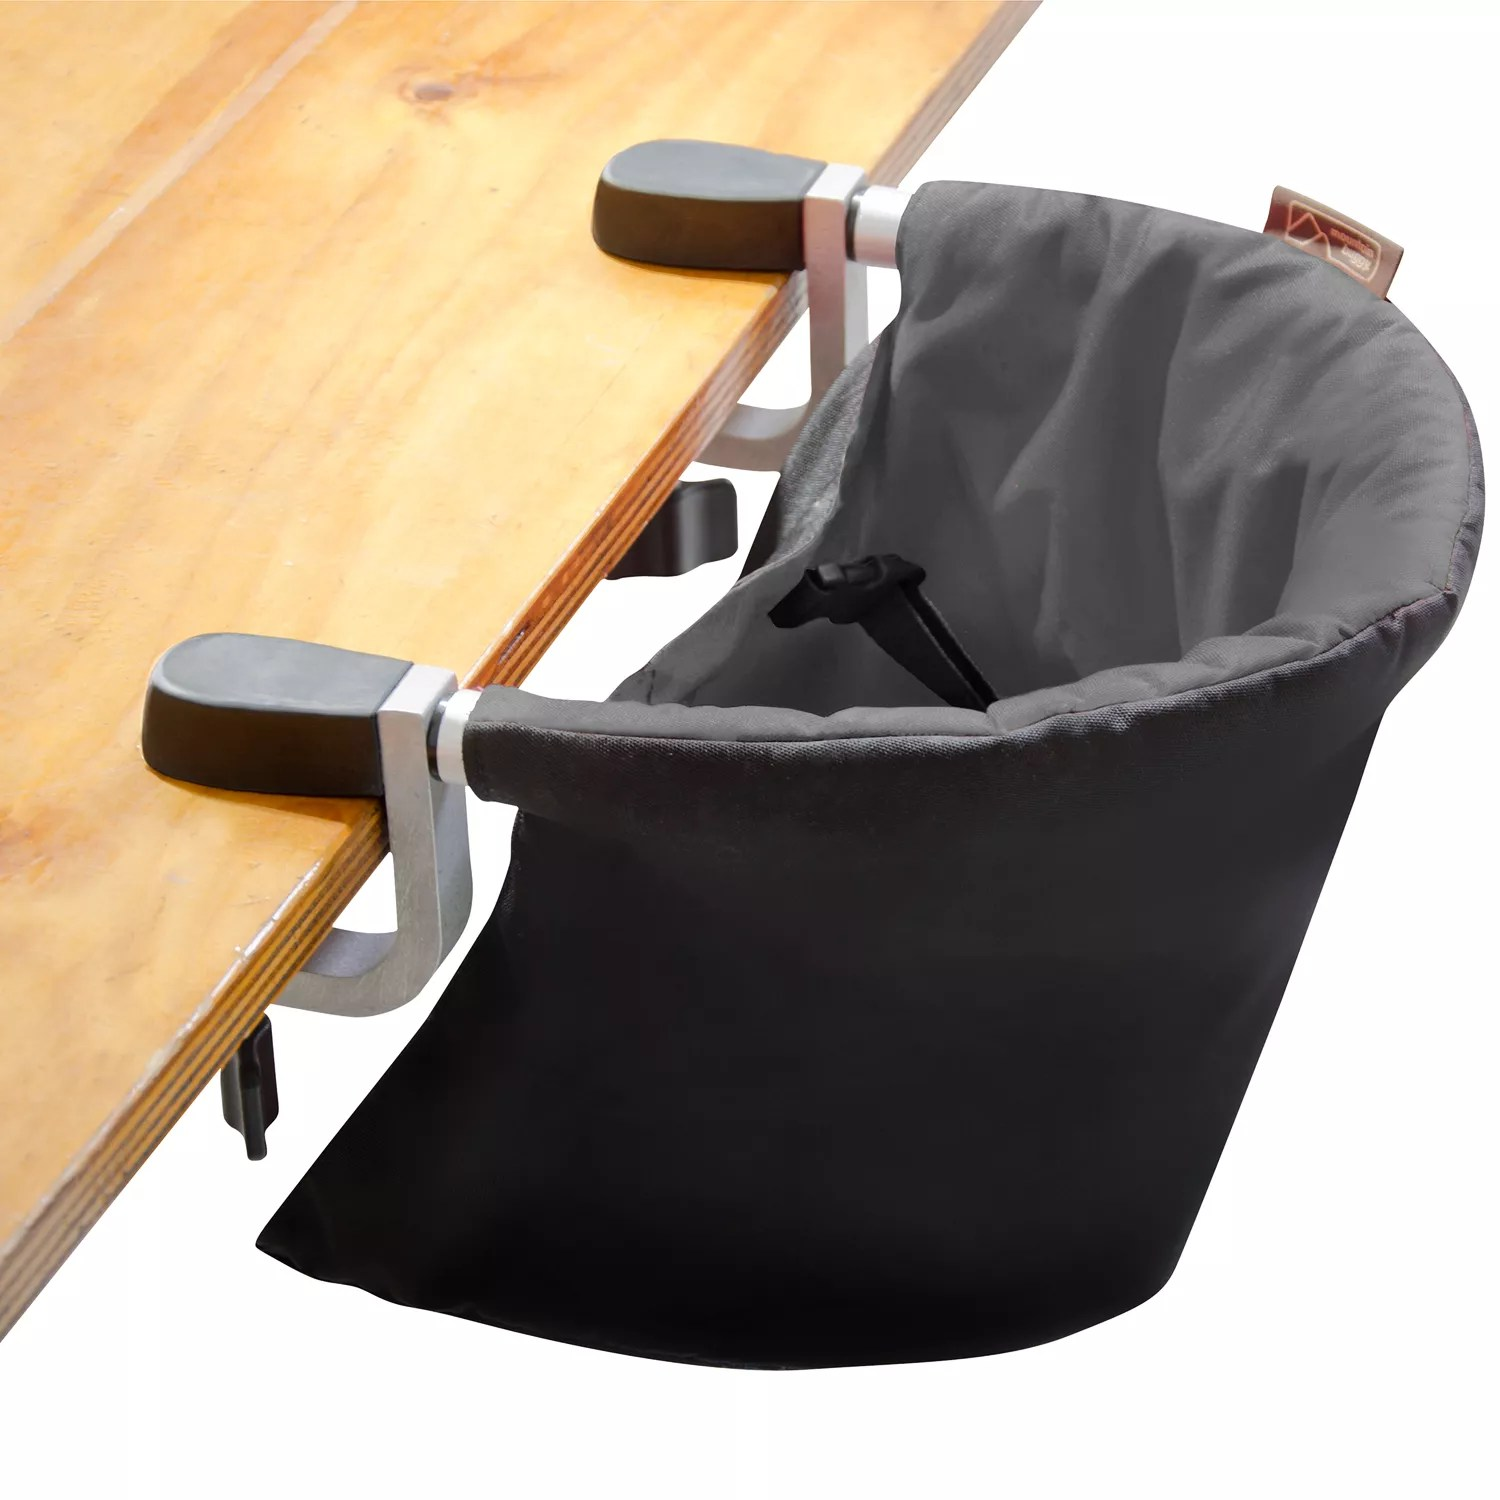 Buy High Chair Mountain Buggy Pod Portable Highchair Flint At John Lewis